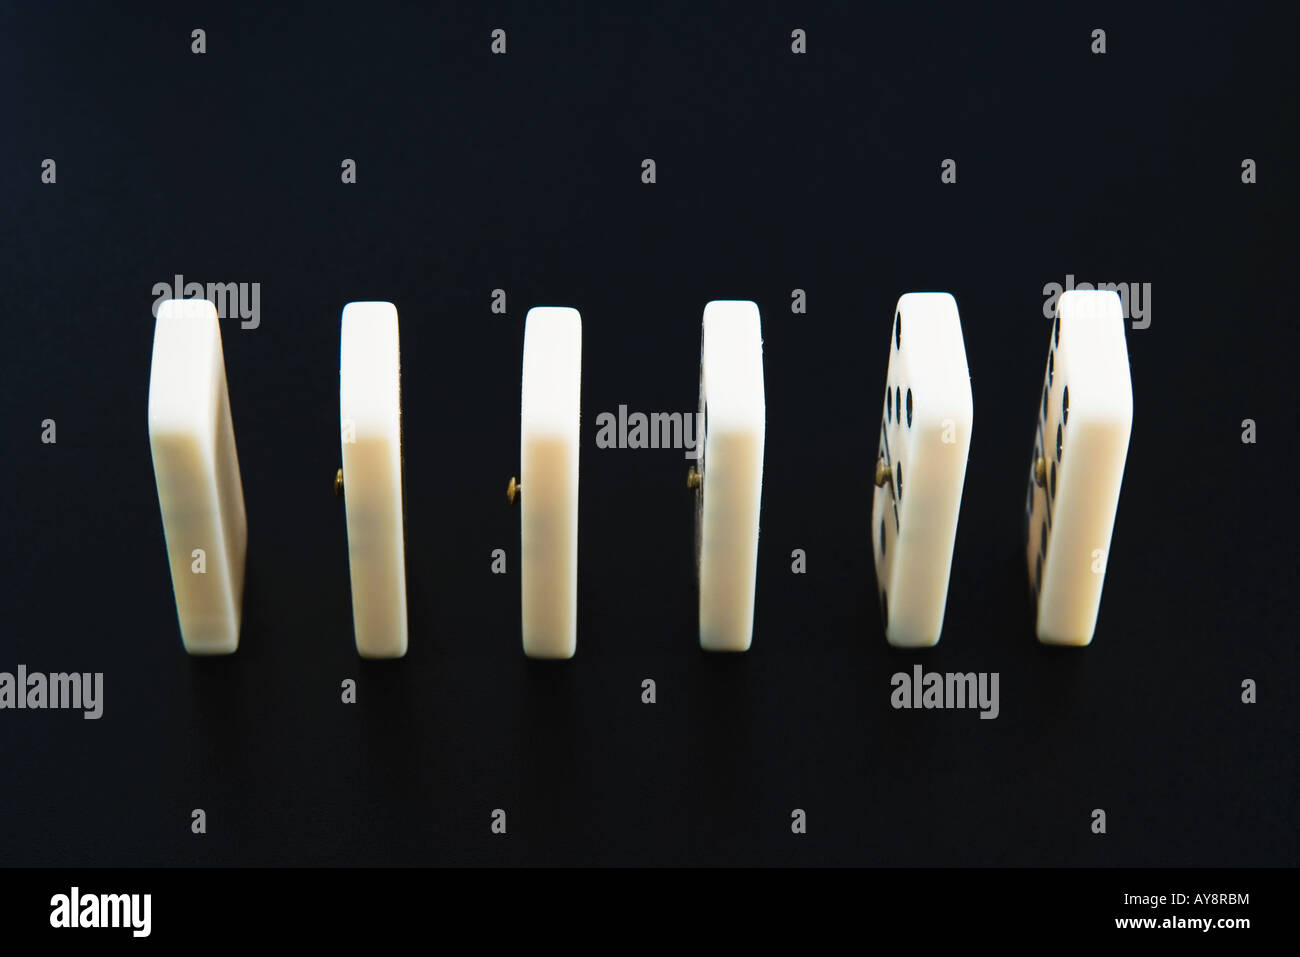 Dominoes in a row, close-up - Stock Image